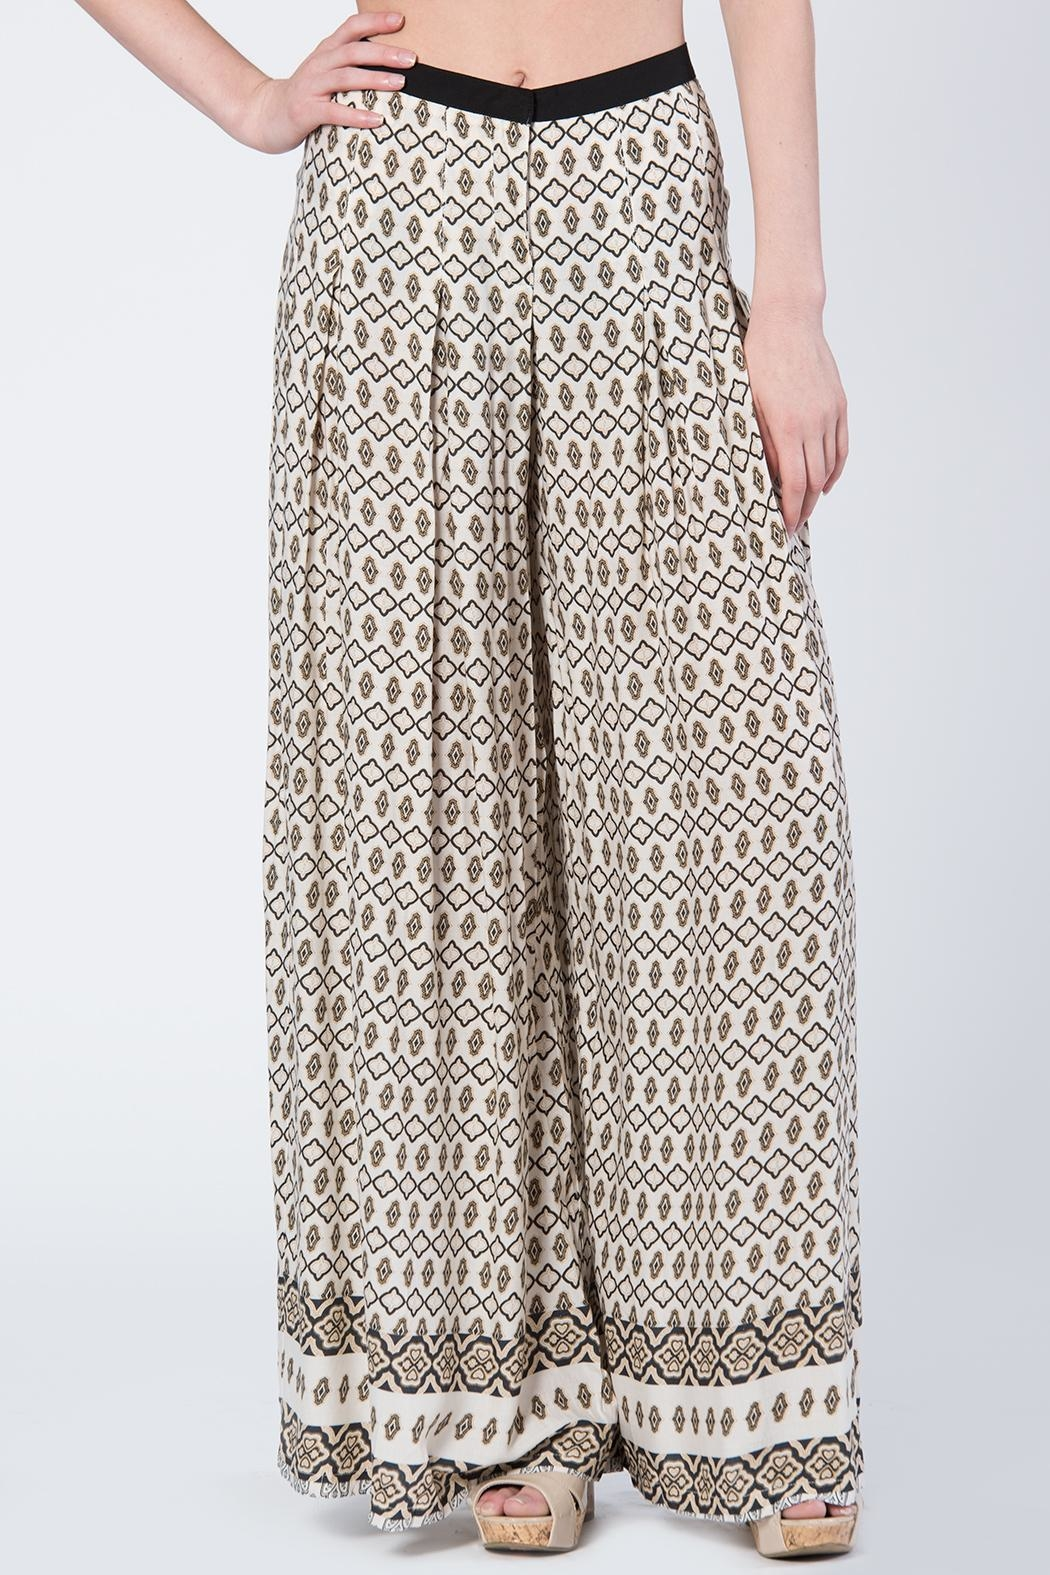 BEULAH STYLE Beulah Print Pants - Side Cropped Image